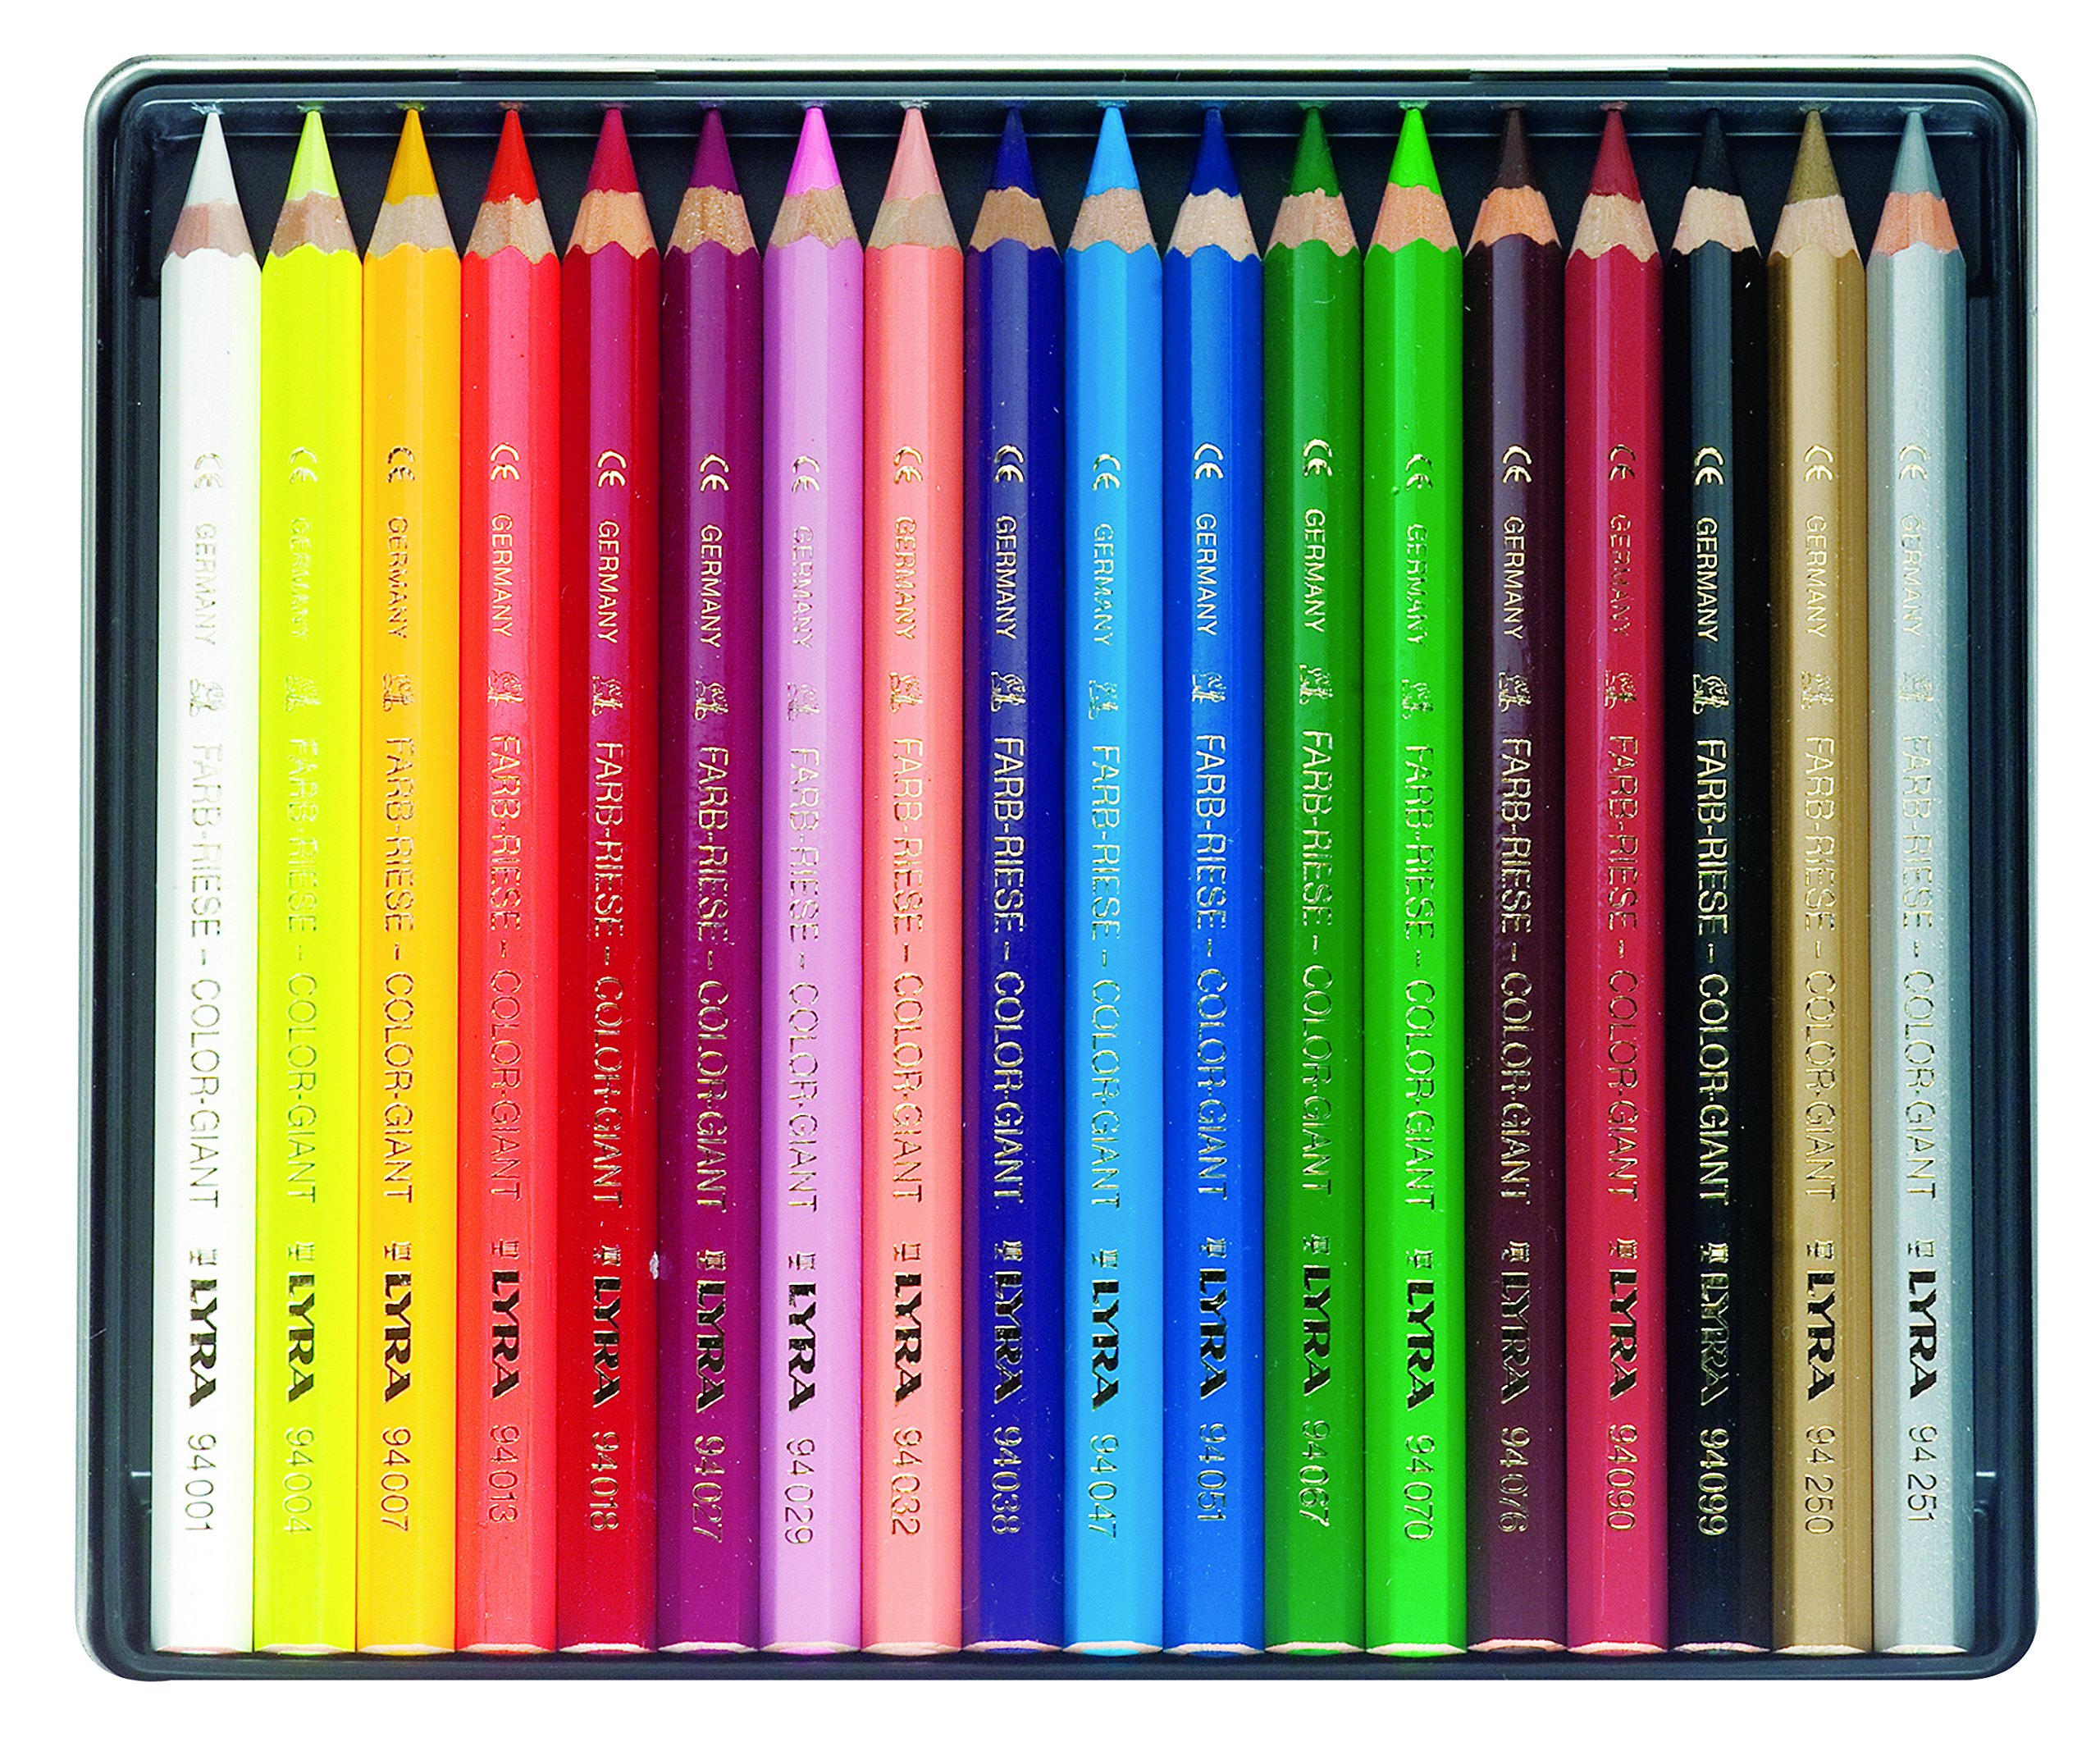 LYRA Color-Giants Colored Pencils, Lacquered, 6.25 Millimeter Cores, Set of 18 Pencils, Assorted Colors (3941181) by Lyra (Image #2)